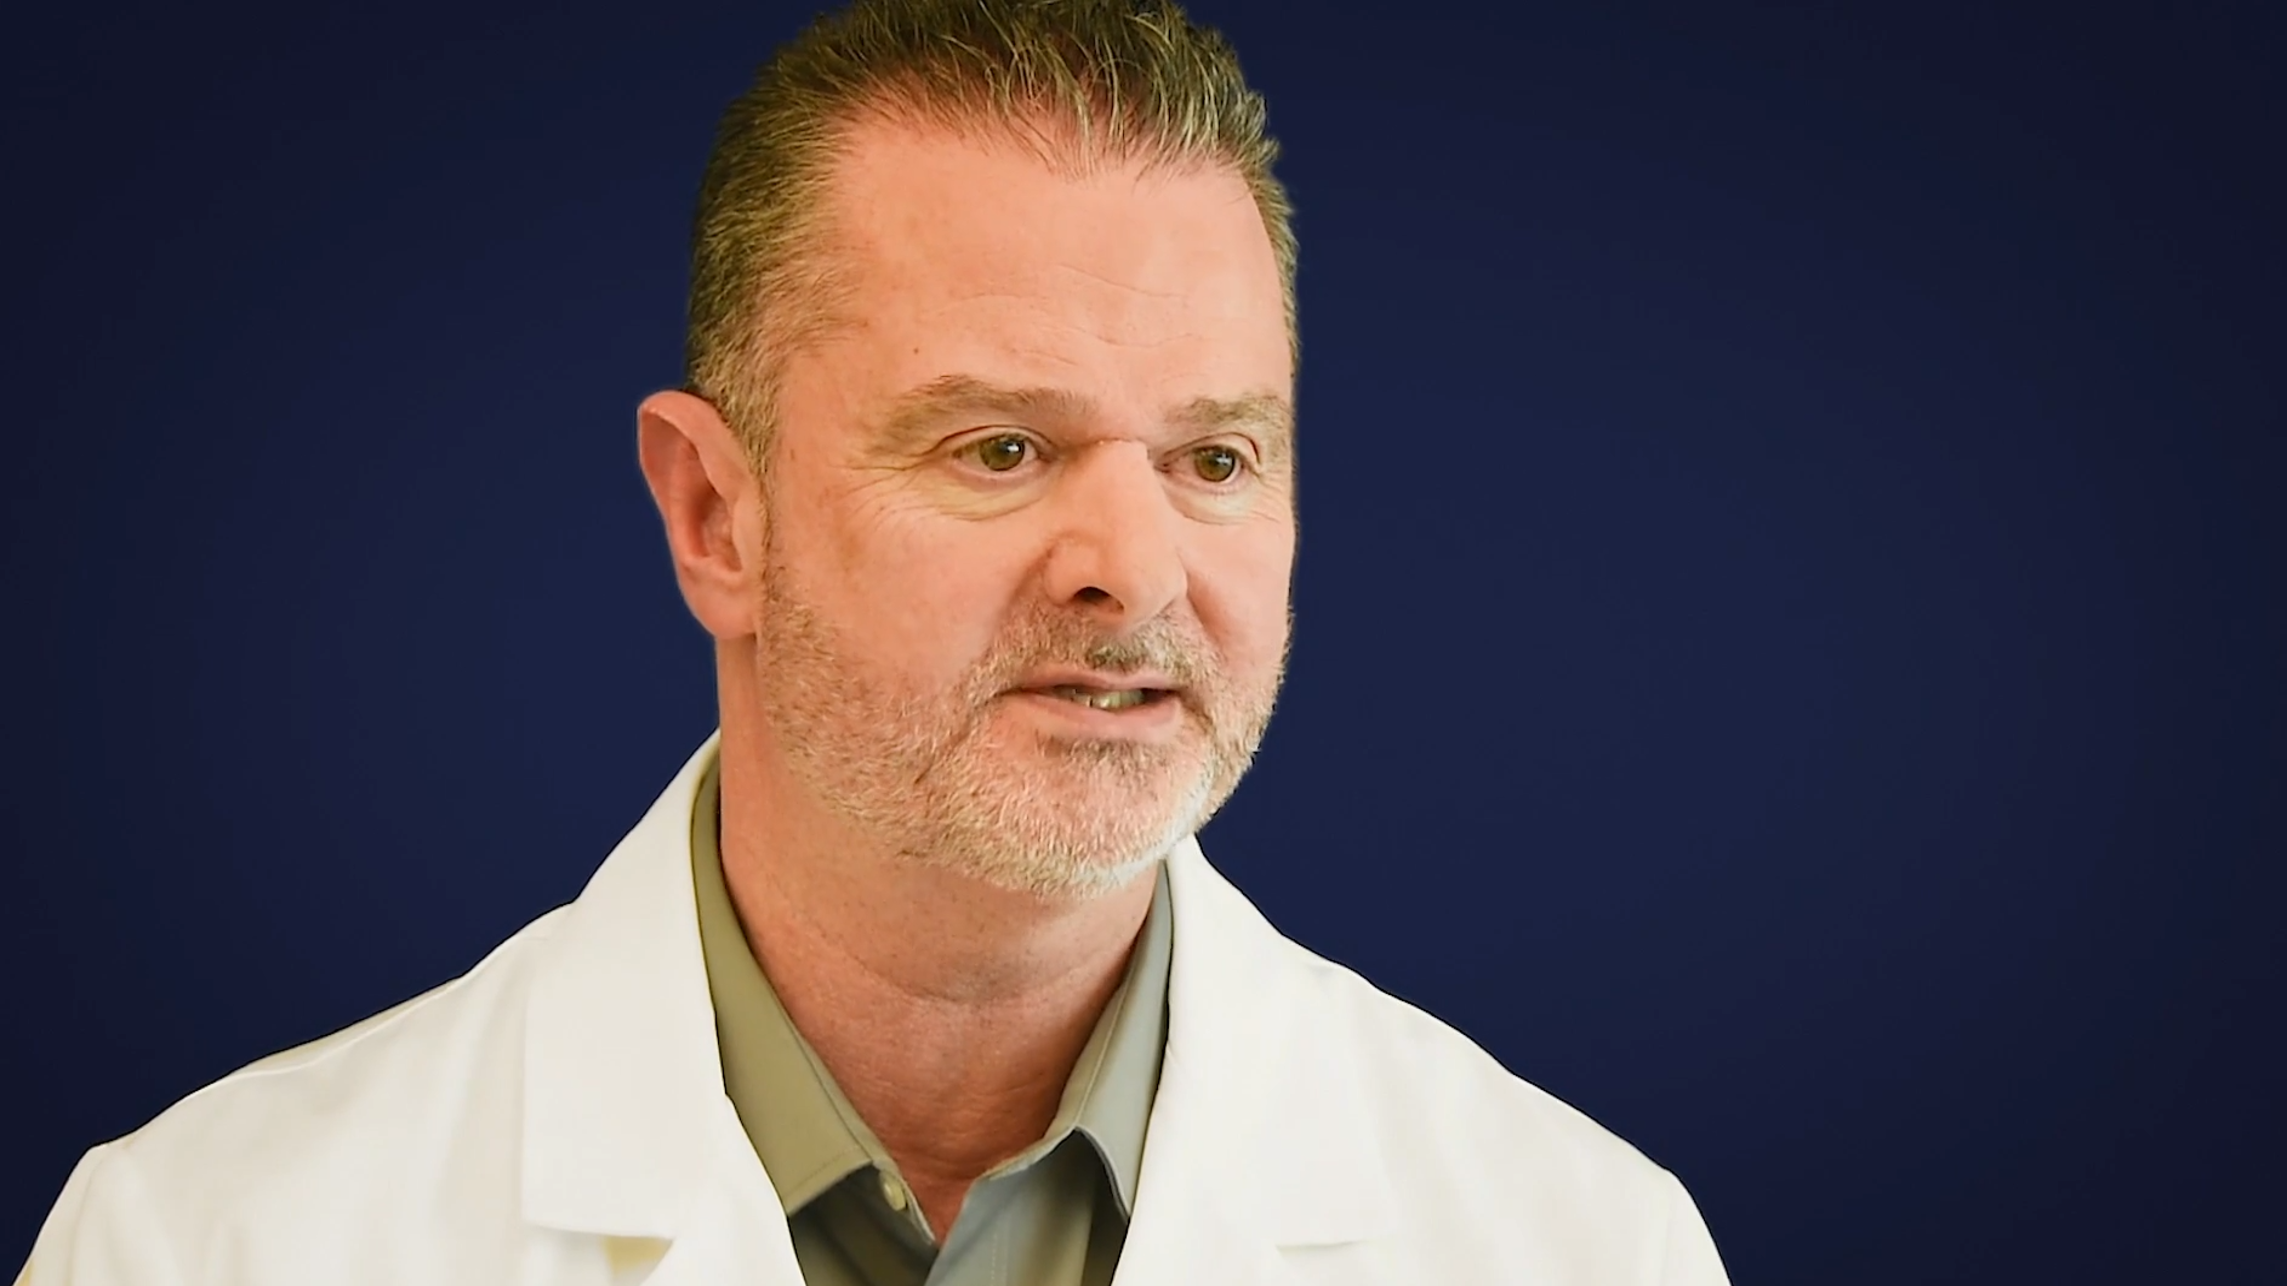 Video: Q&A with Dr. Doug Williamson on the Future of Parkinson's Disease Research